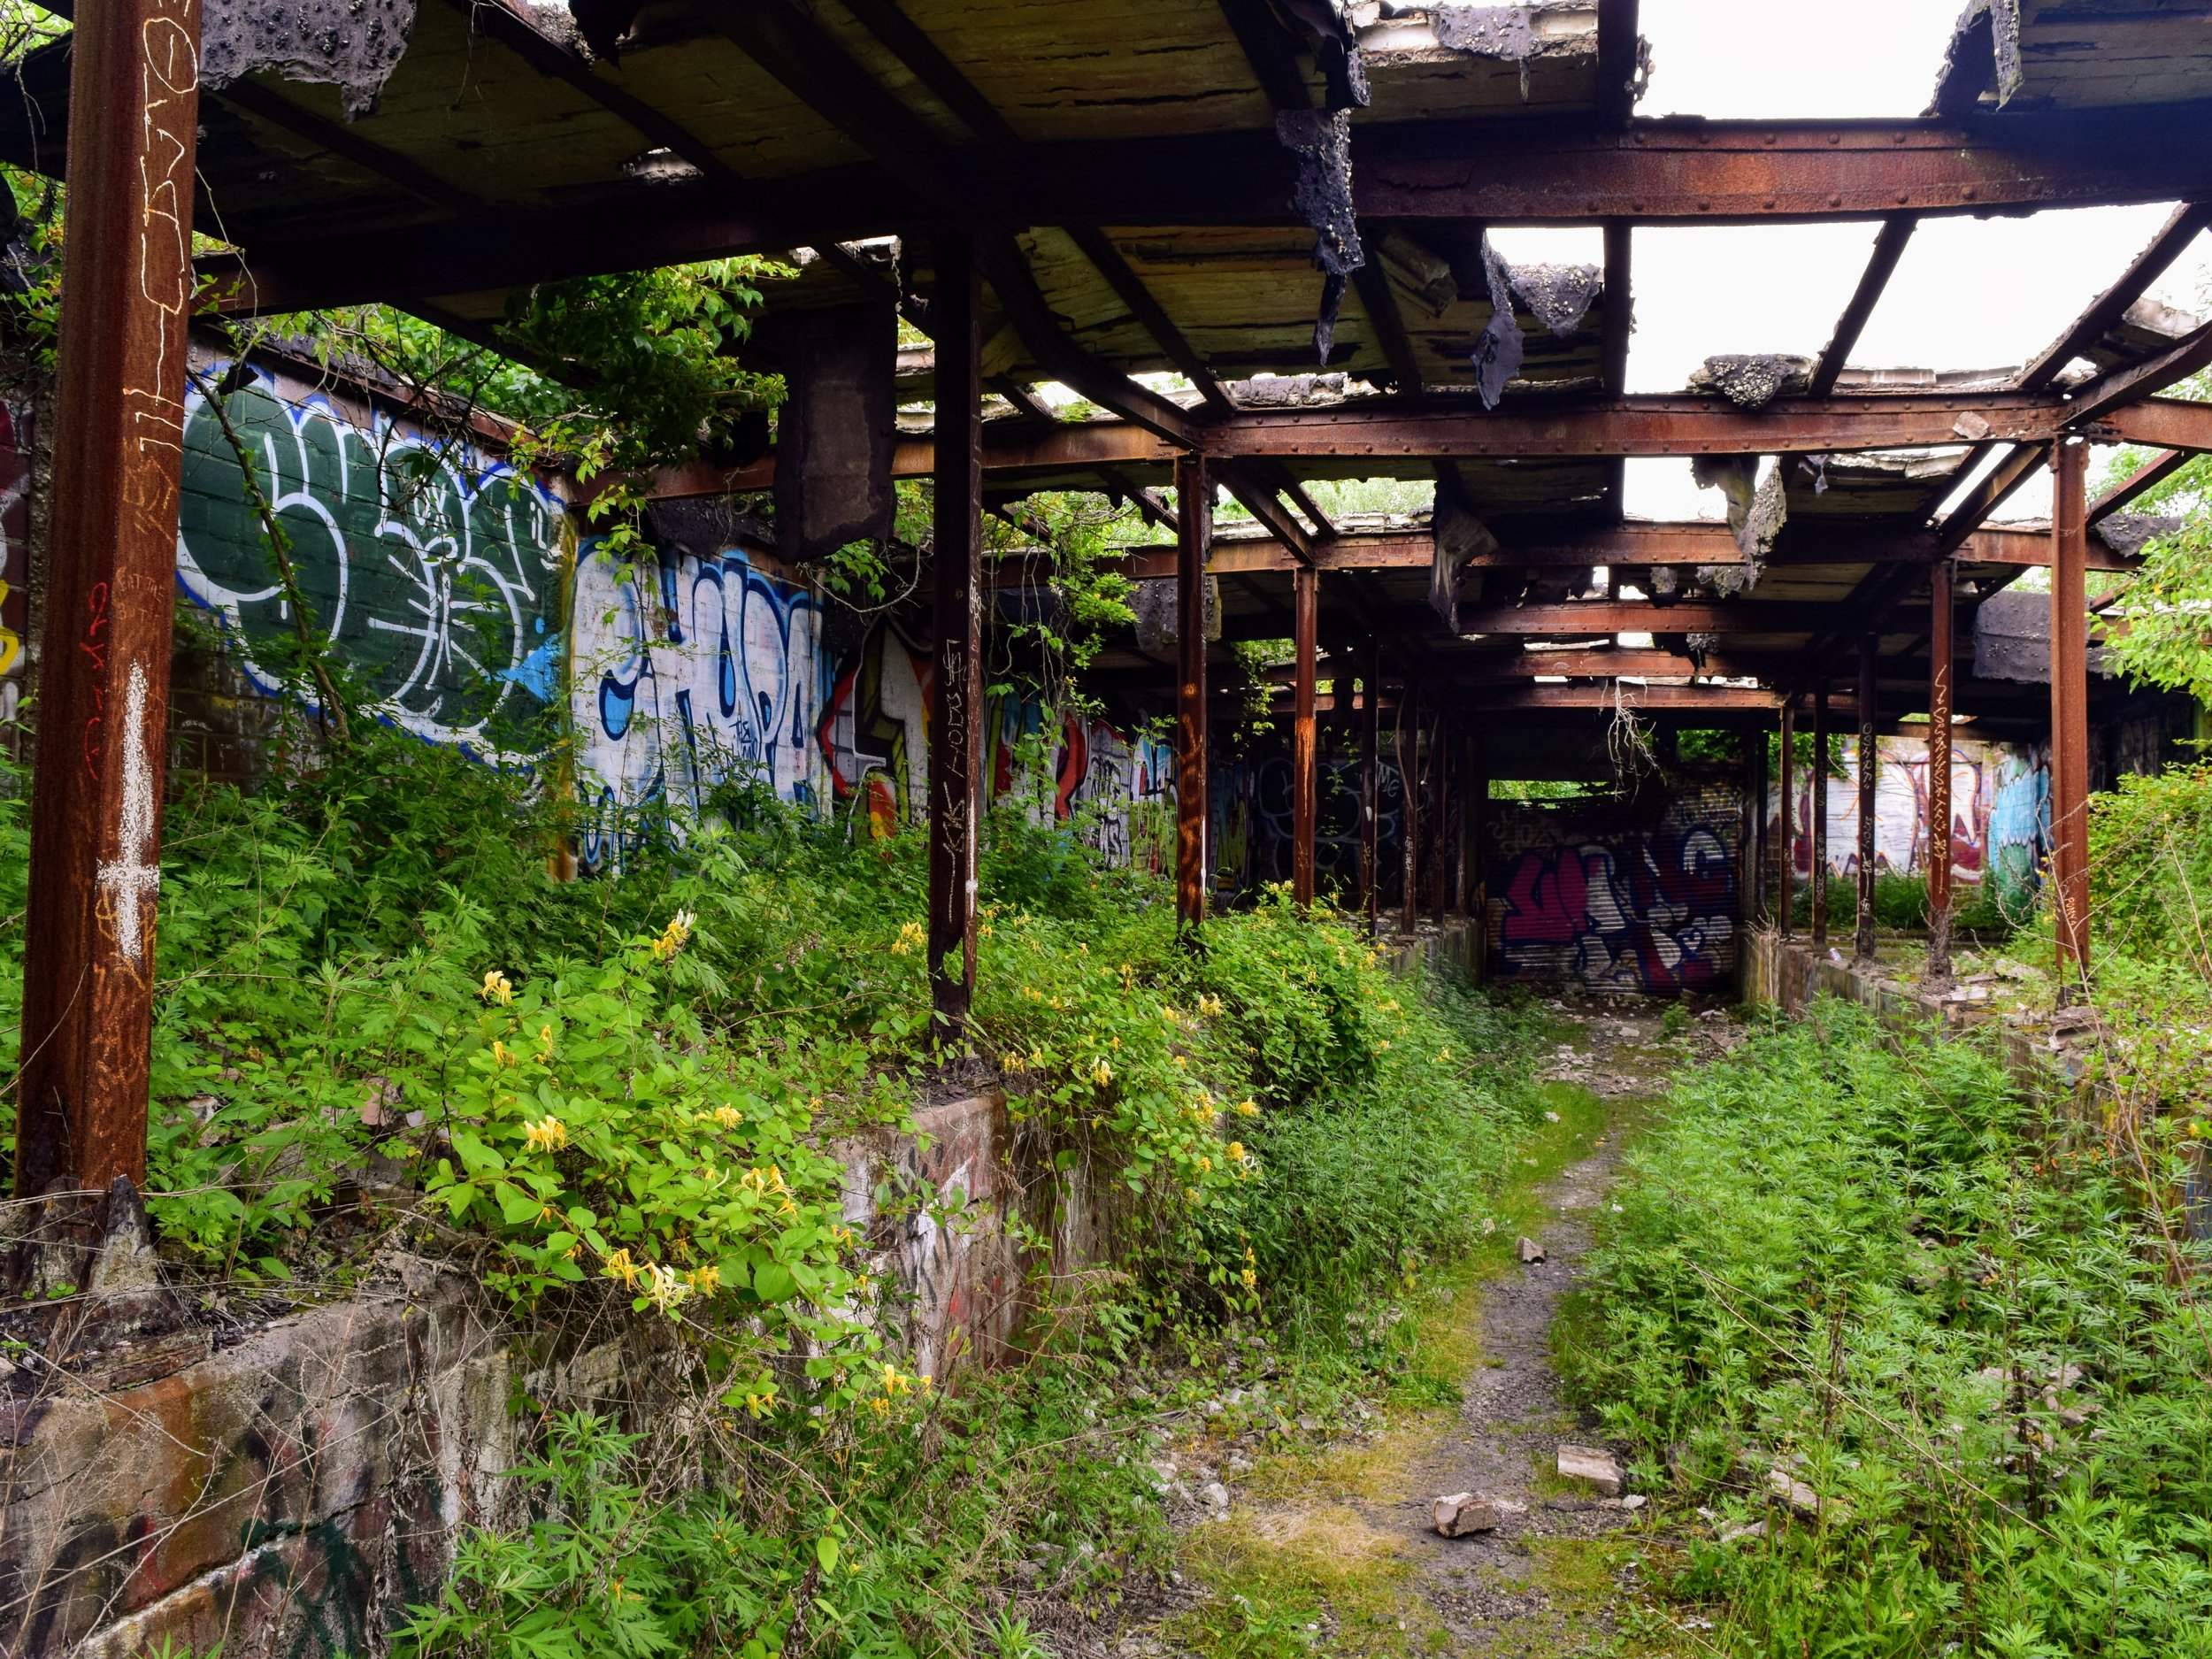 Abandoned building with graffiti and weeds